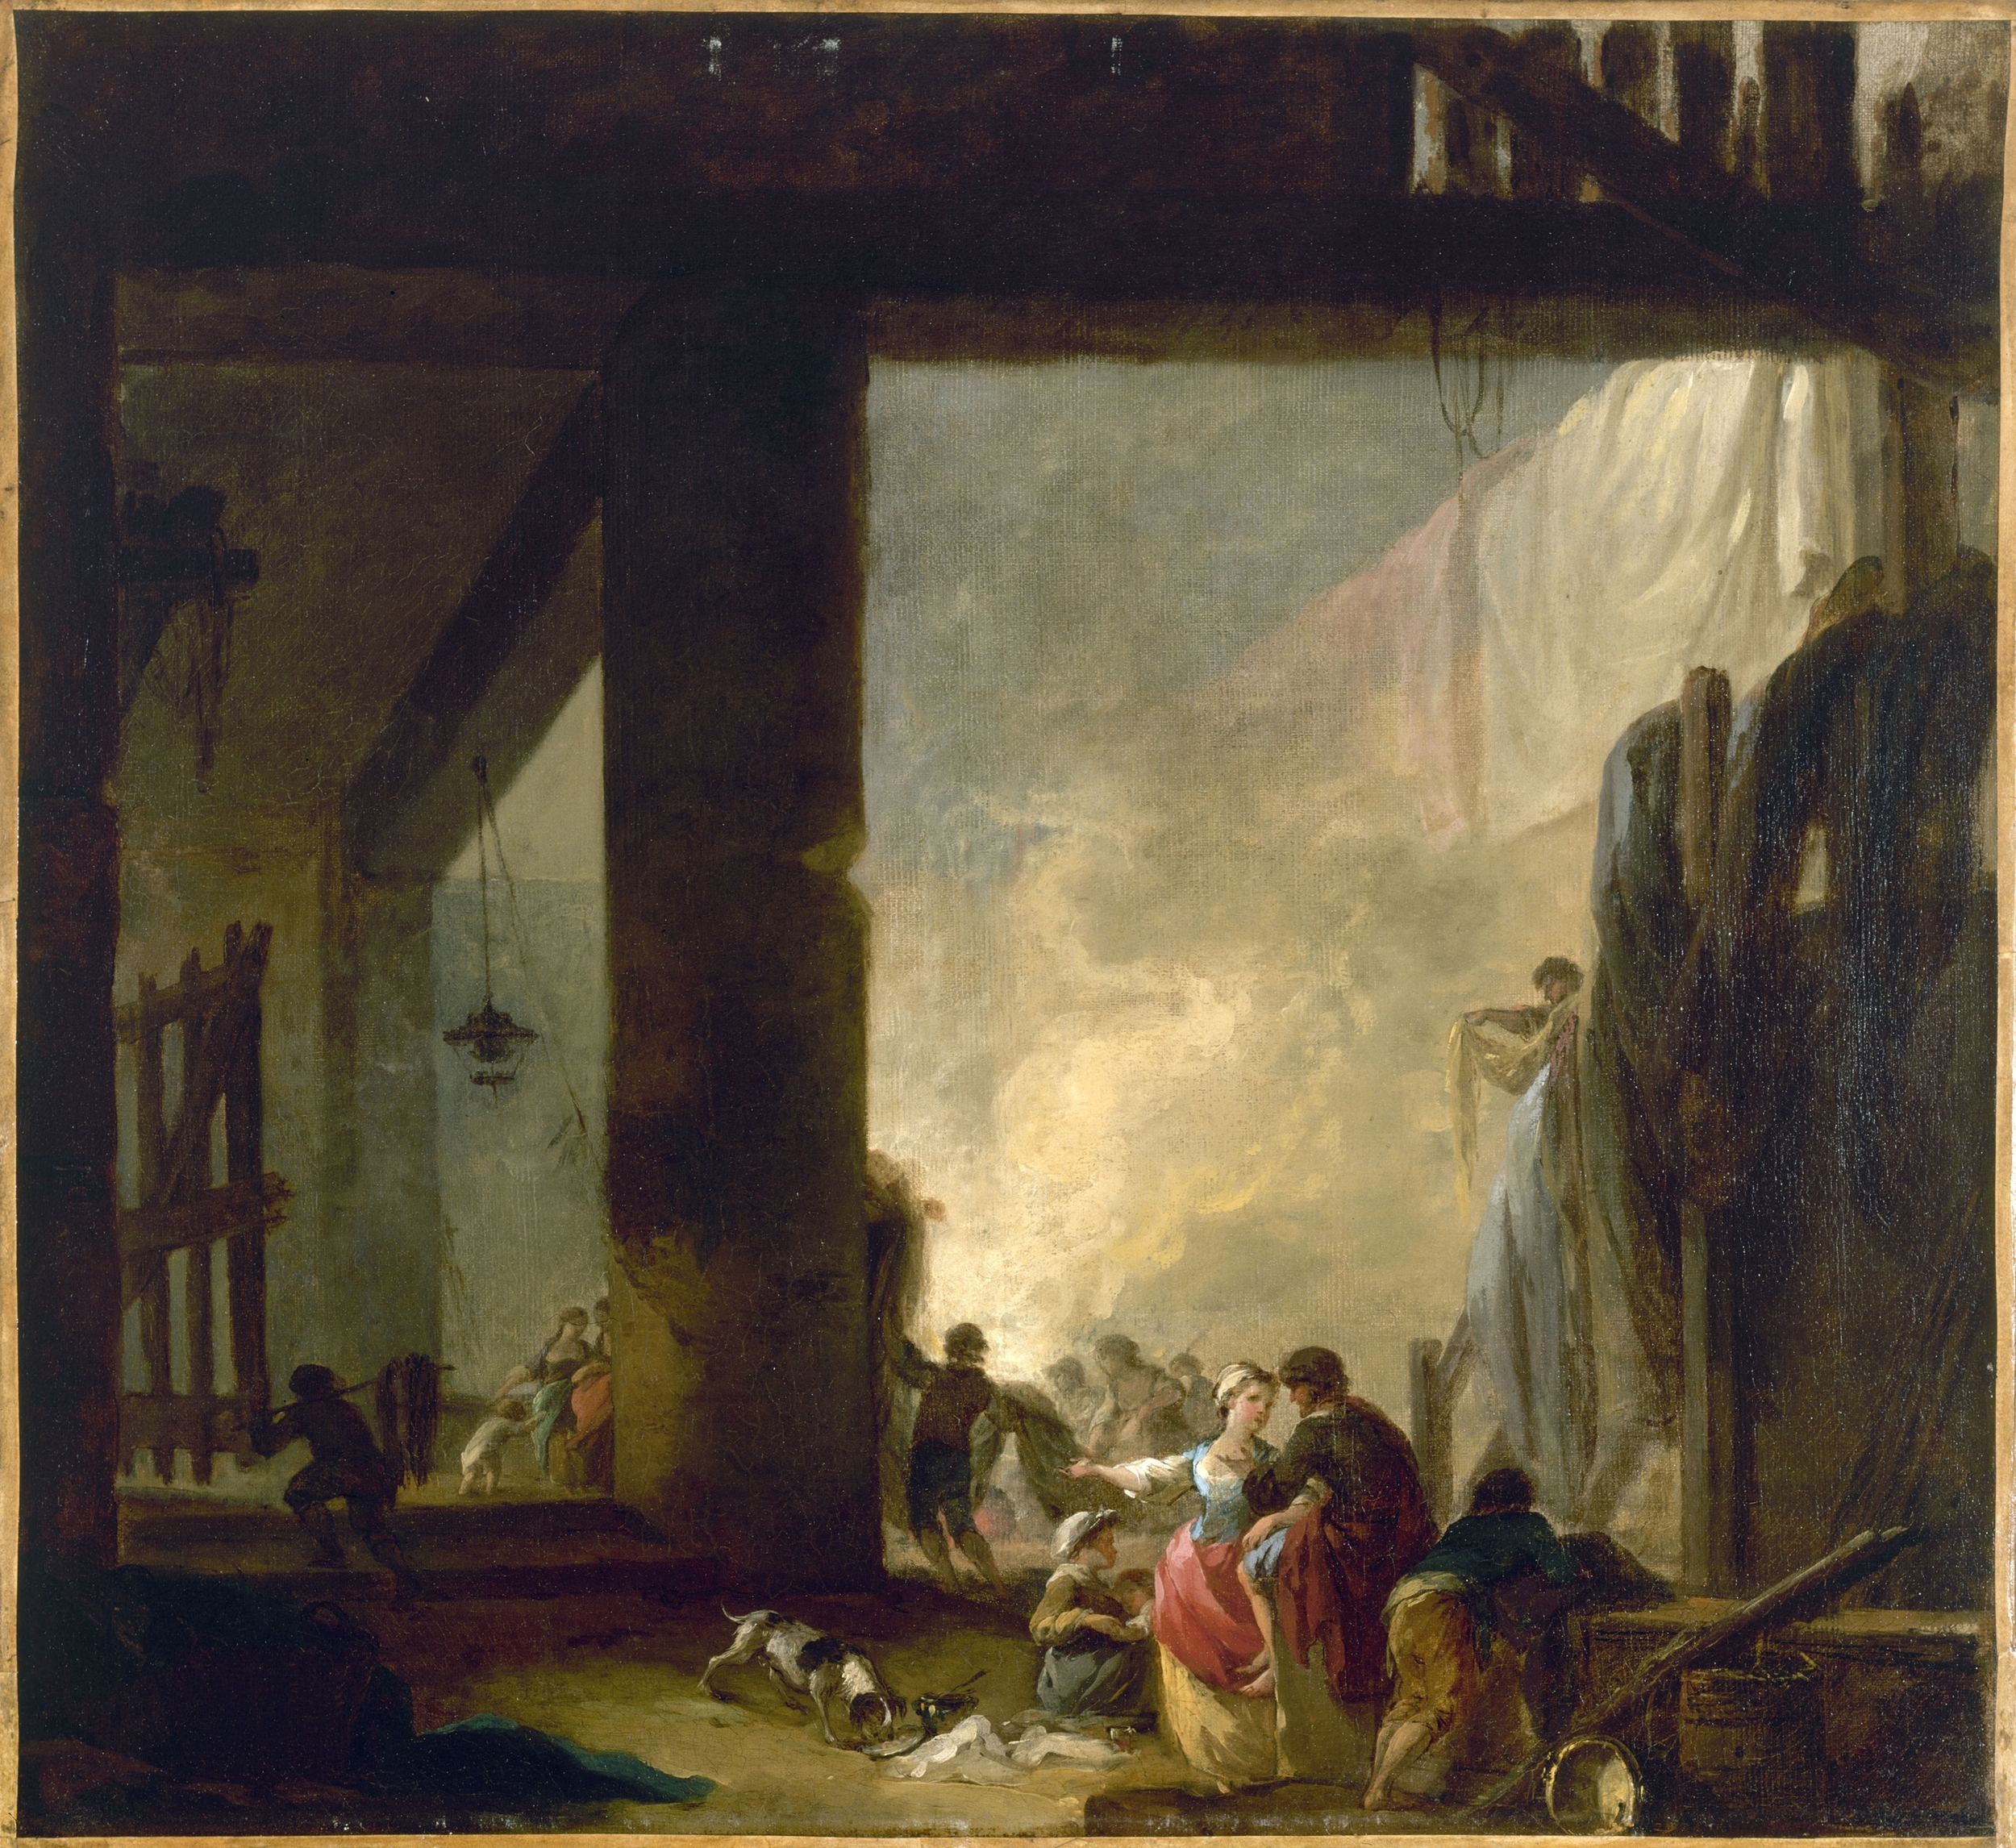 Hubert Robert - The Laundry